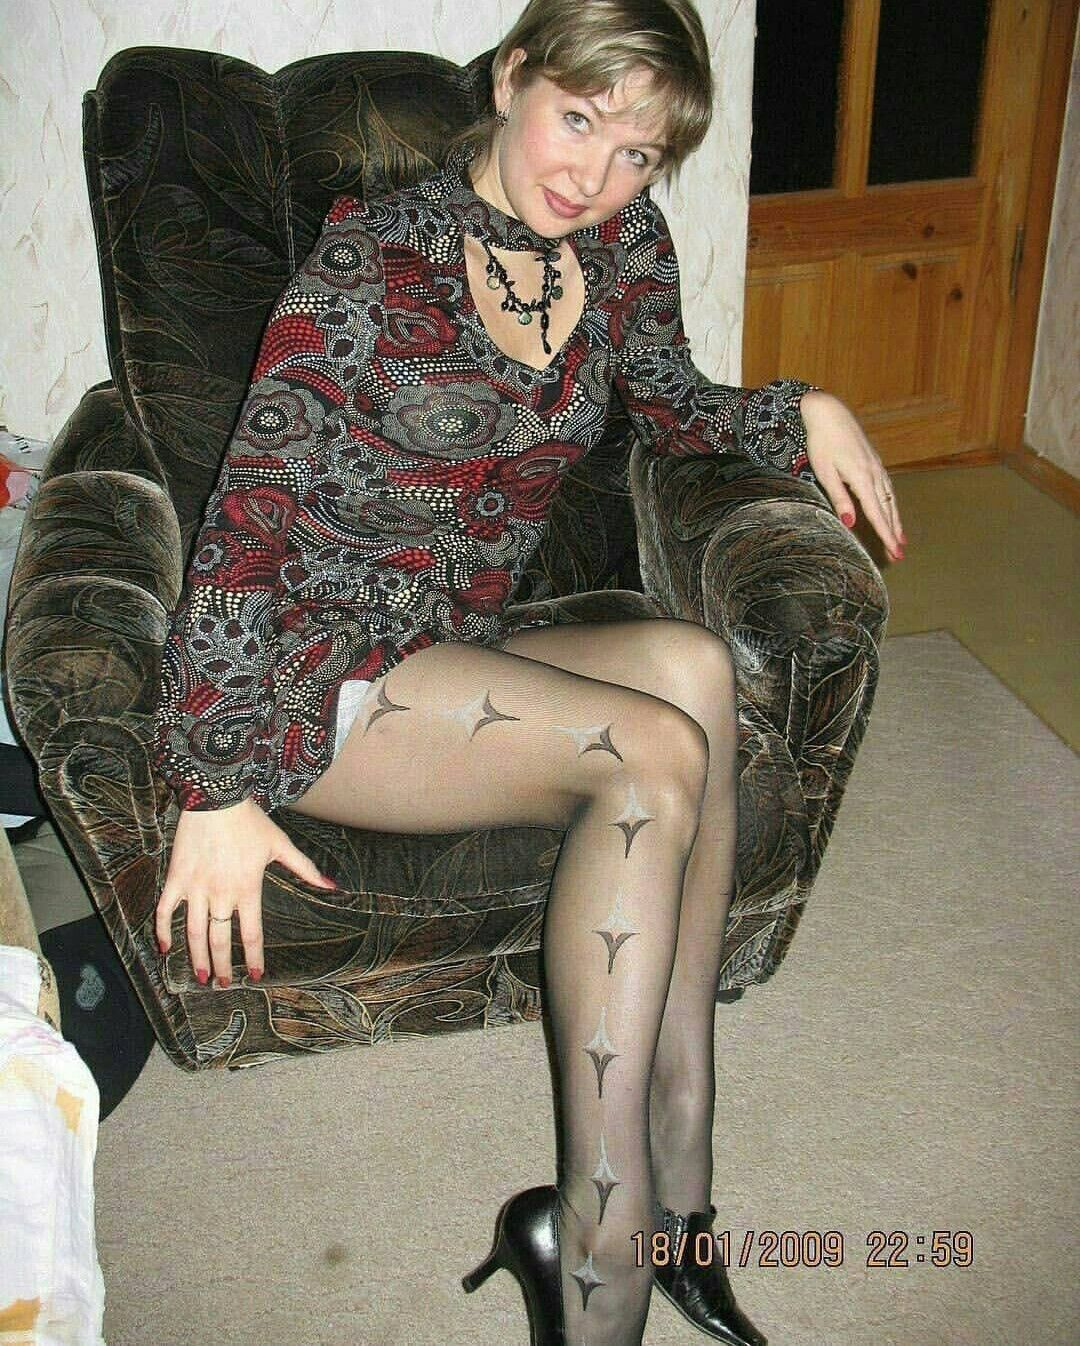 Party Girls in Pantyhose, Nylons & Tights #1. Nylon Heaven. Loading. Sexy Amateur Ladies with Crossed Legs, Pantyhose and no Shoes #3.